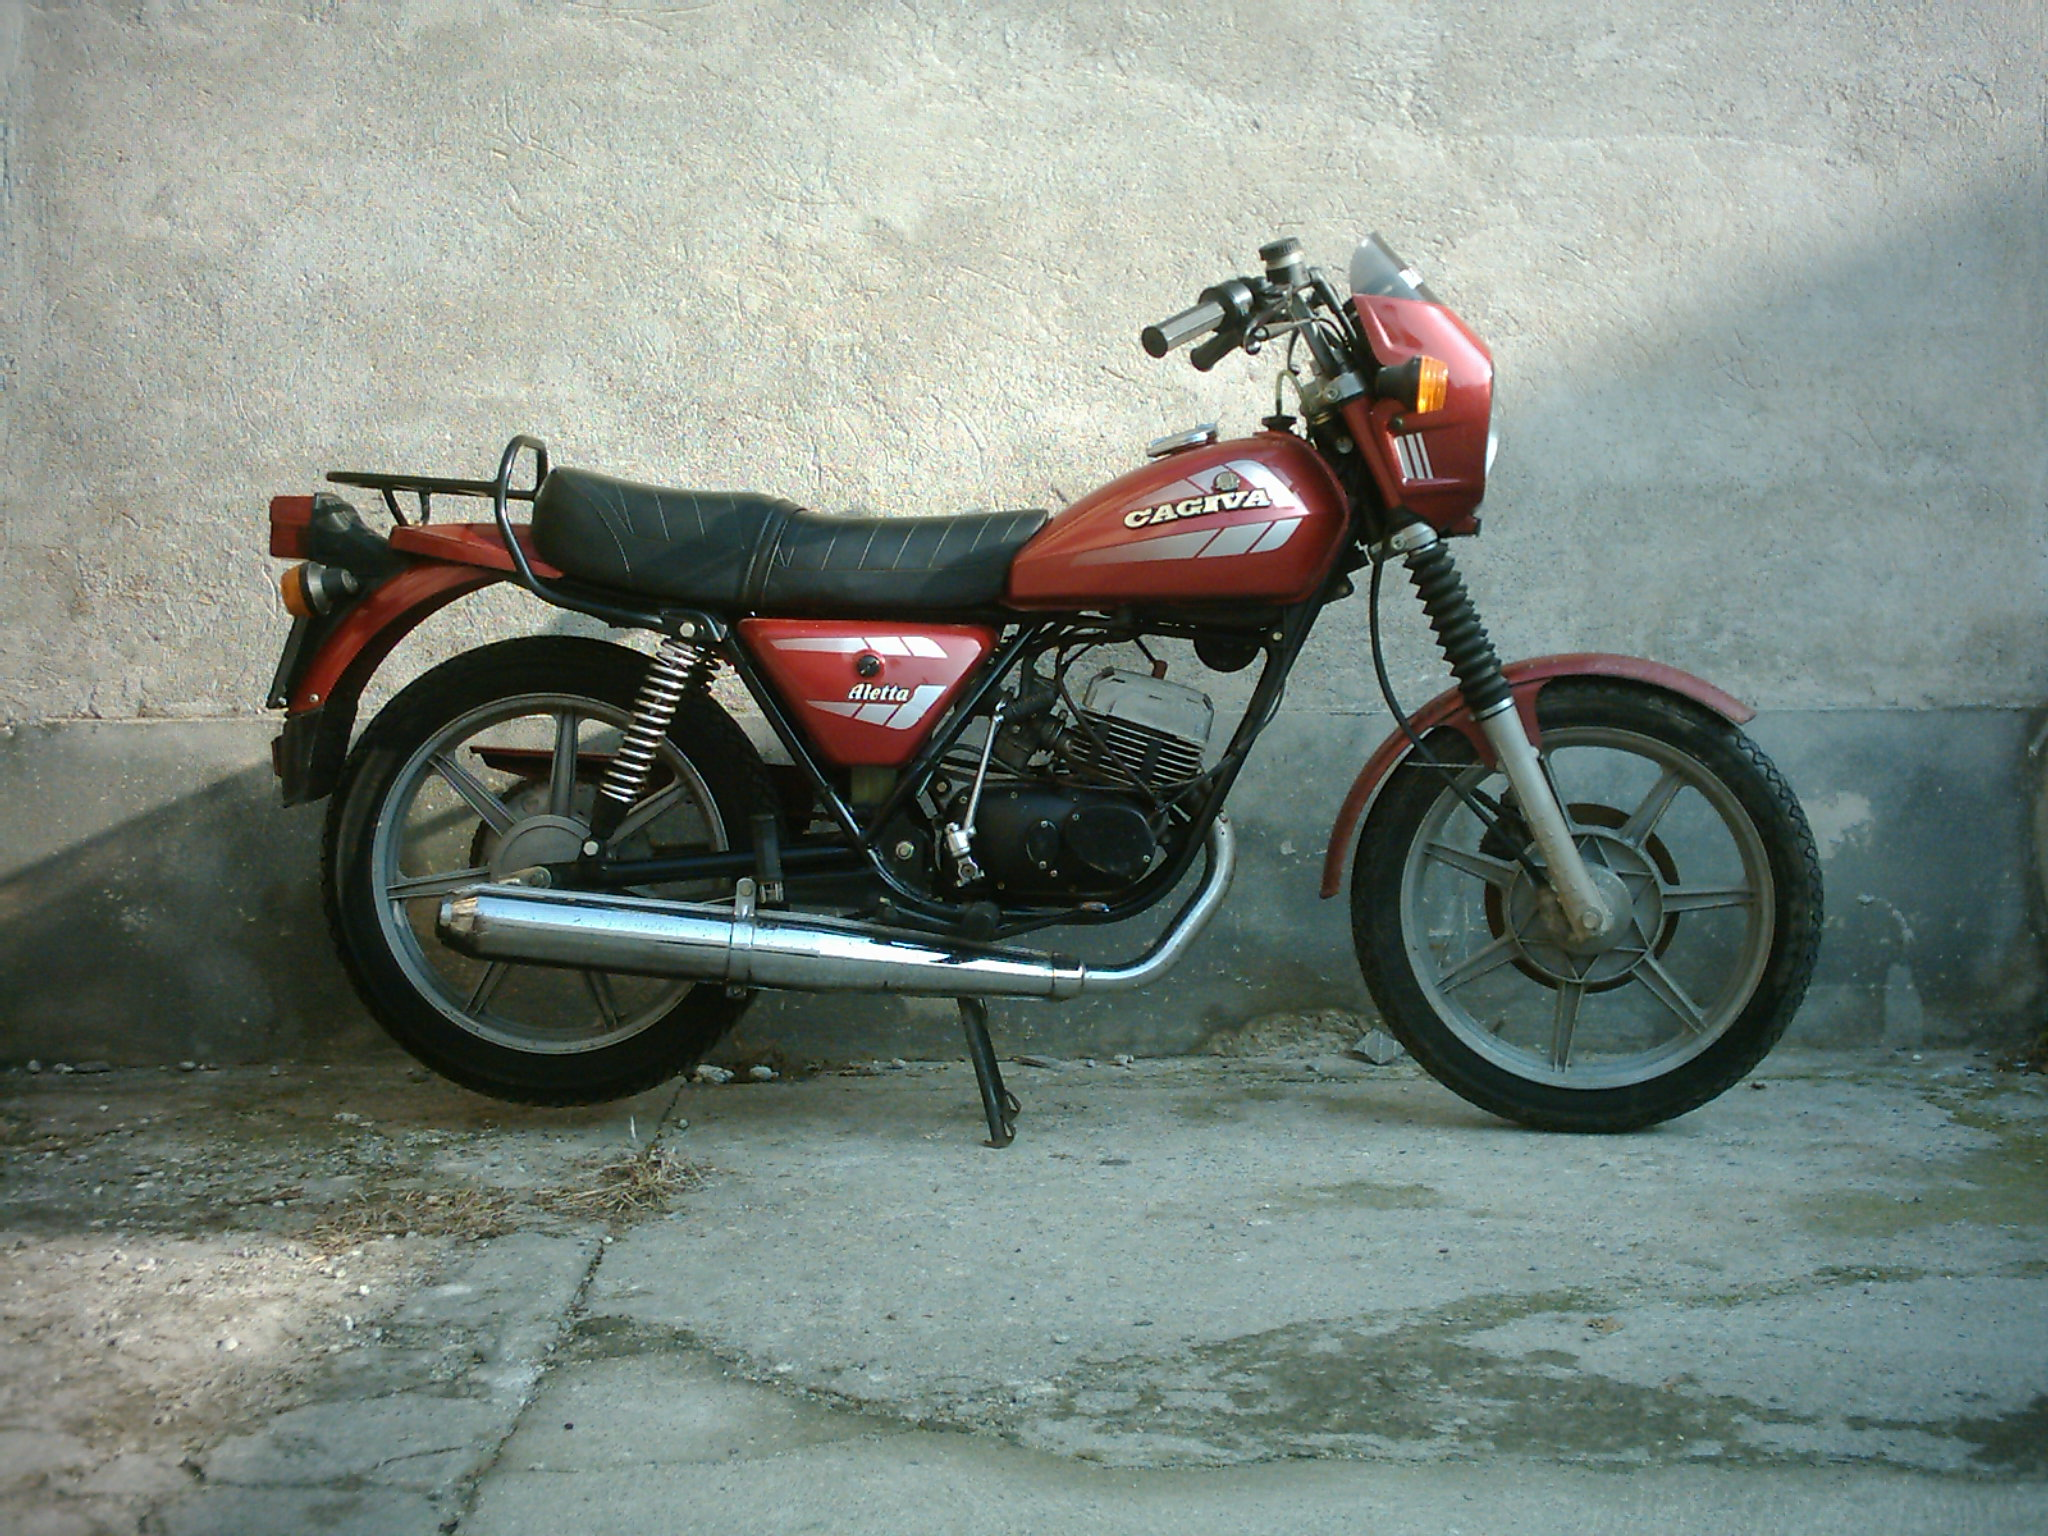 Cagiva SX 350 1979 images #66621